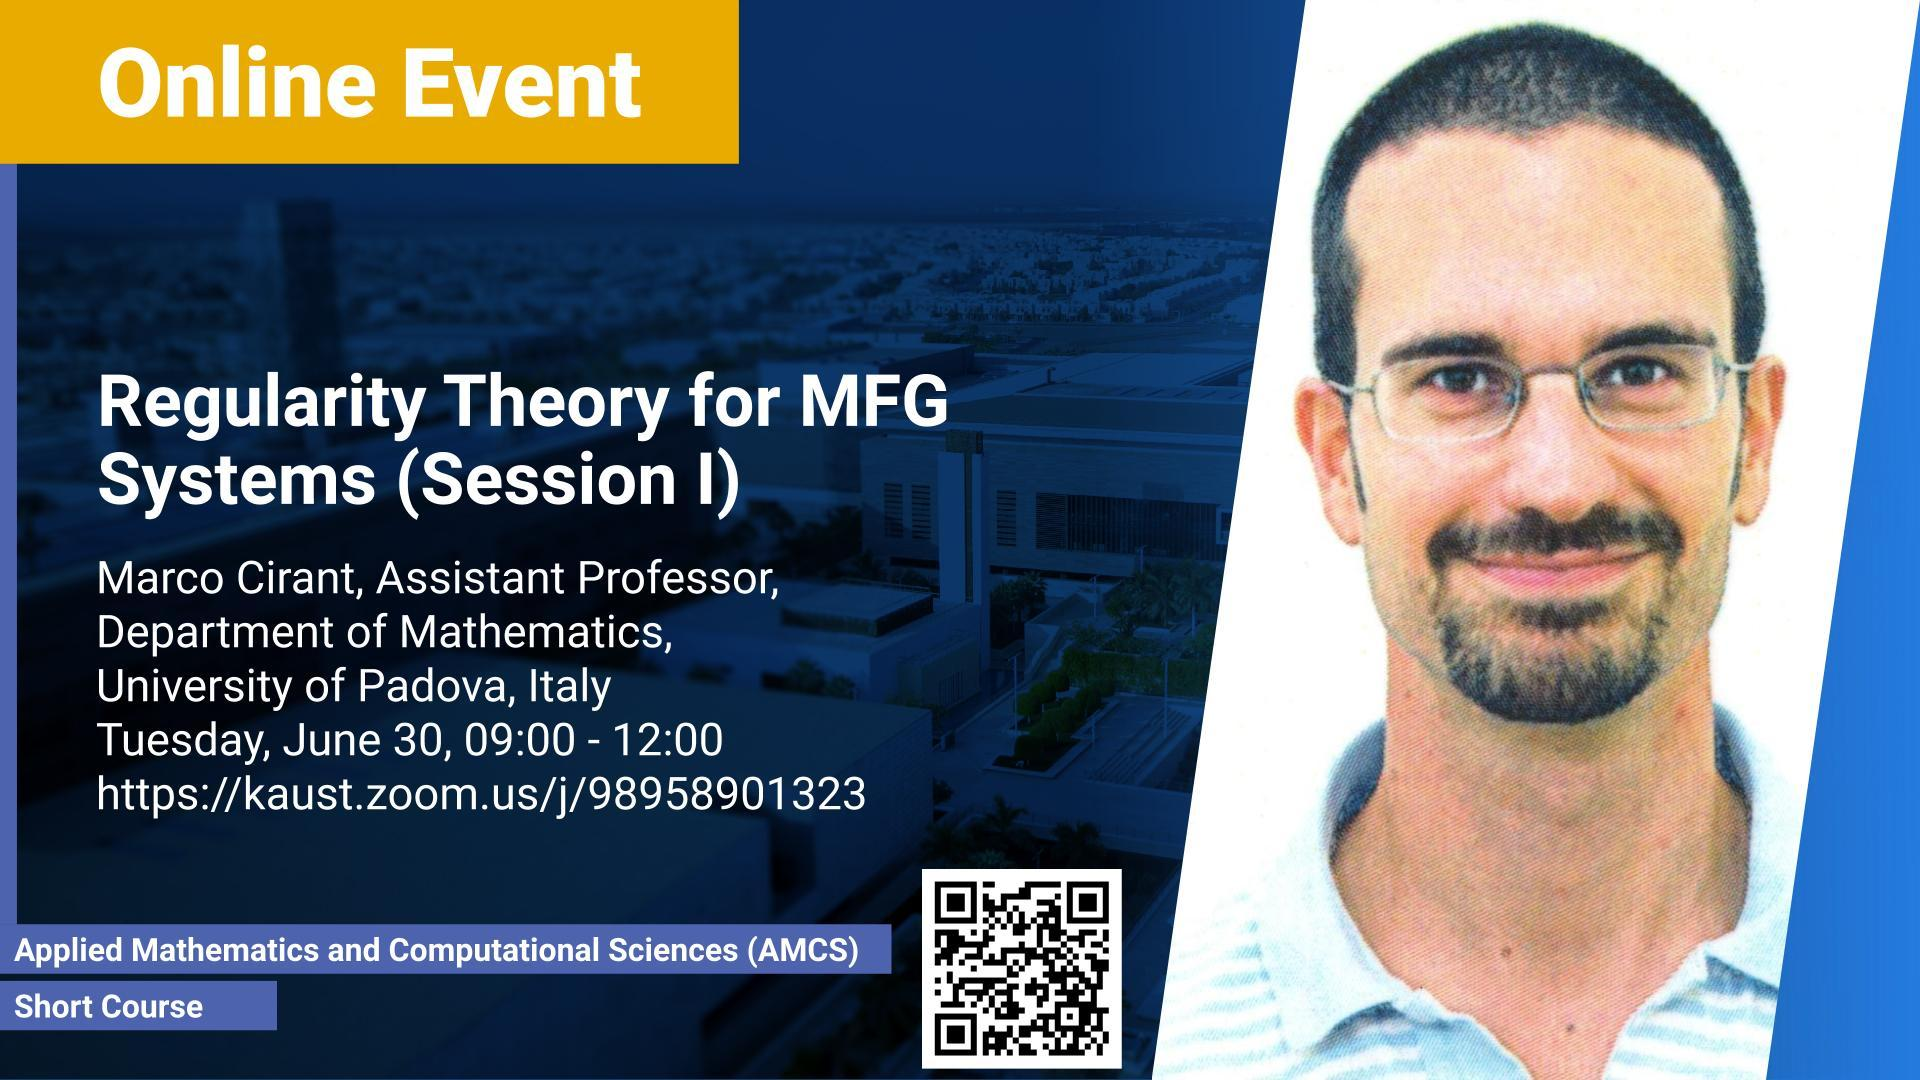 KAUST-CEMSE-AMCS-Short Course-Marco Cirant-Regularity Theory for MFG Systems (Session I)